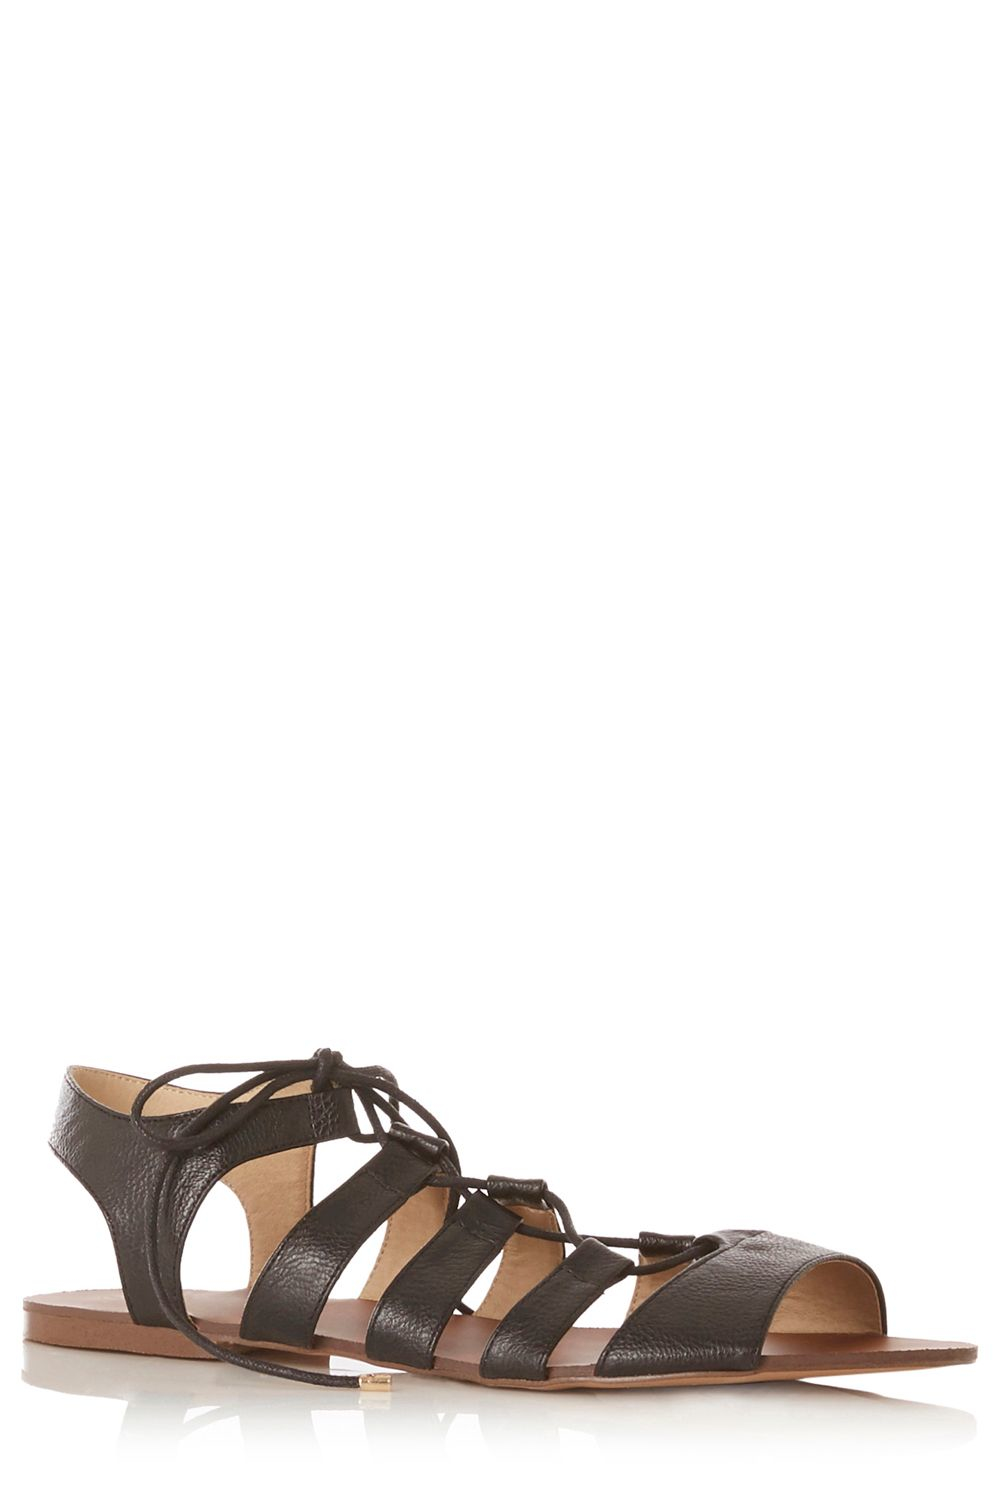 Oasis Gracie Lace Up Sandal in Black